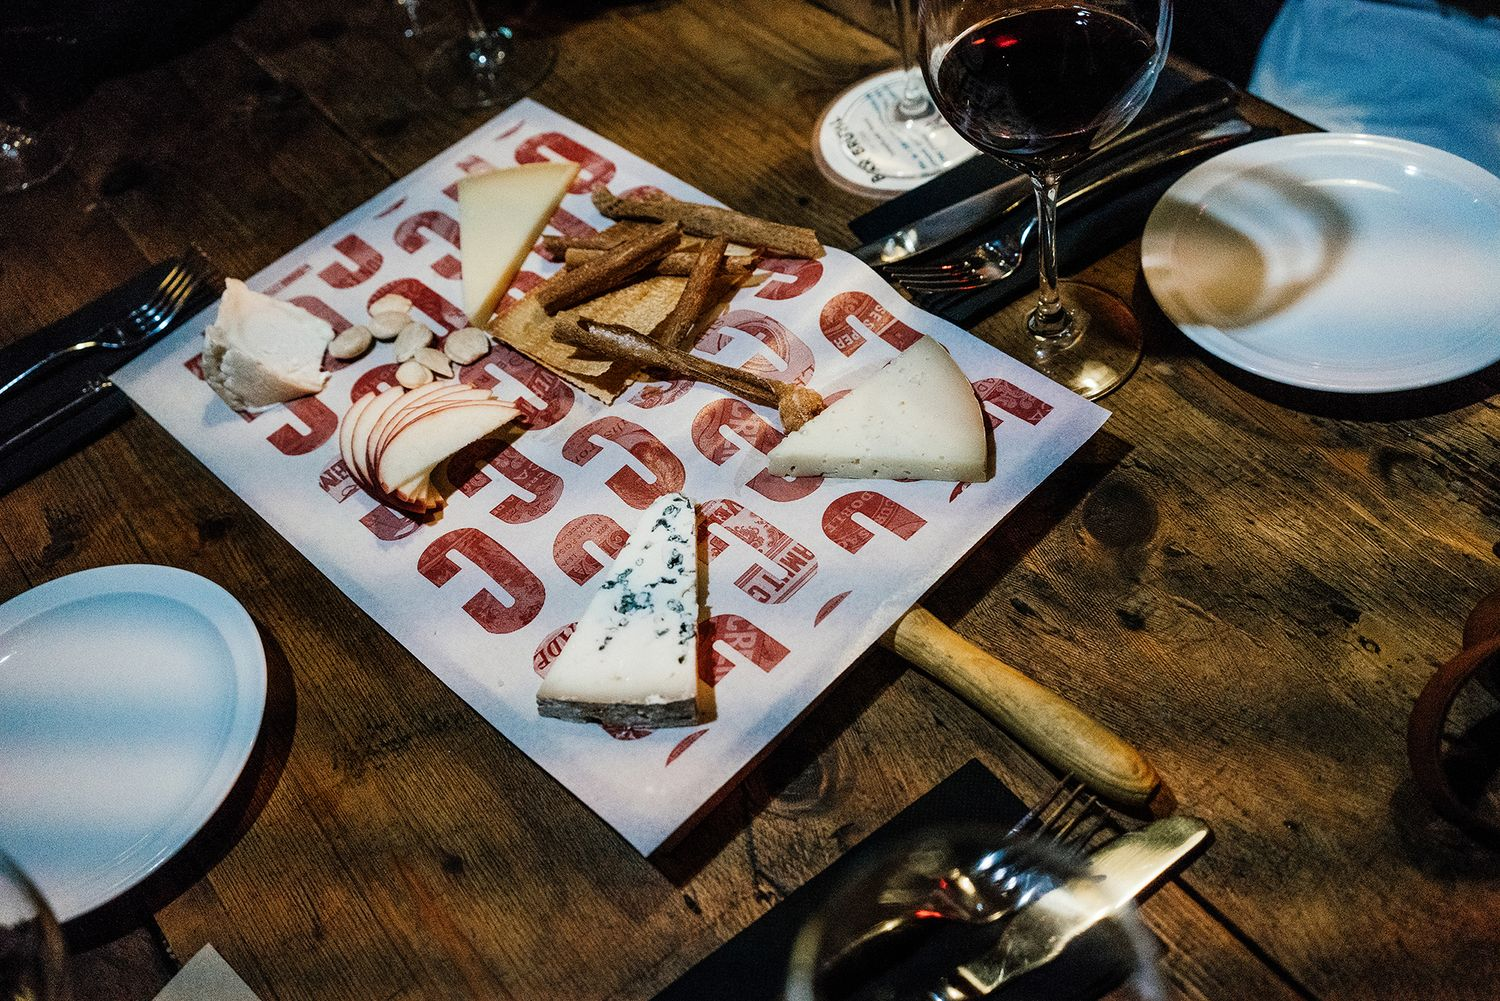 5 Of The Best Wine Bars In Barcelona, According To A Local